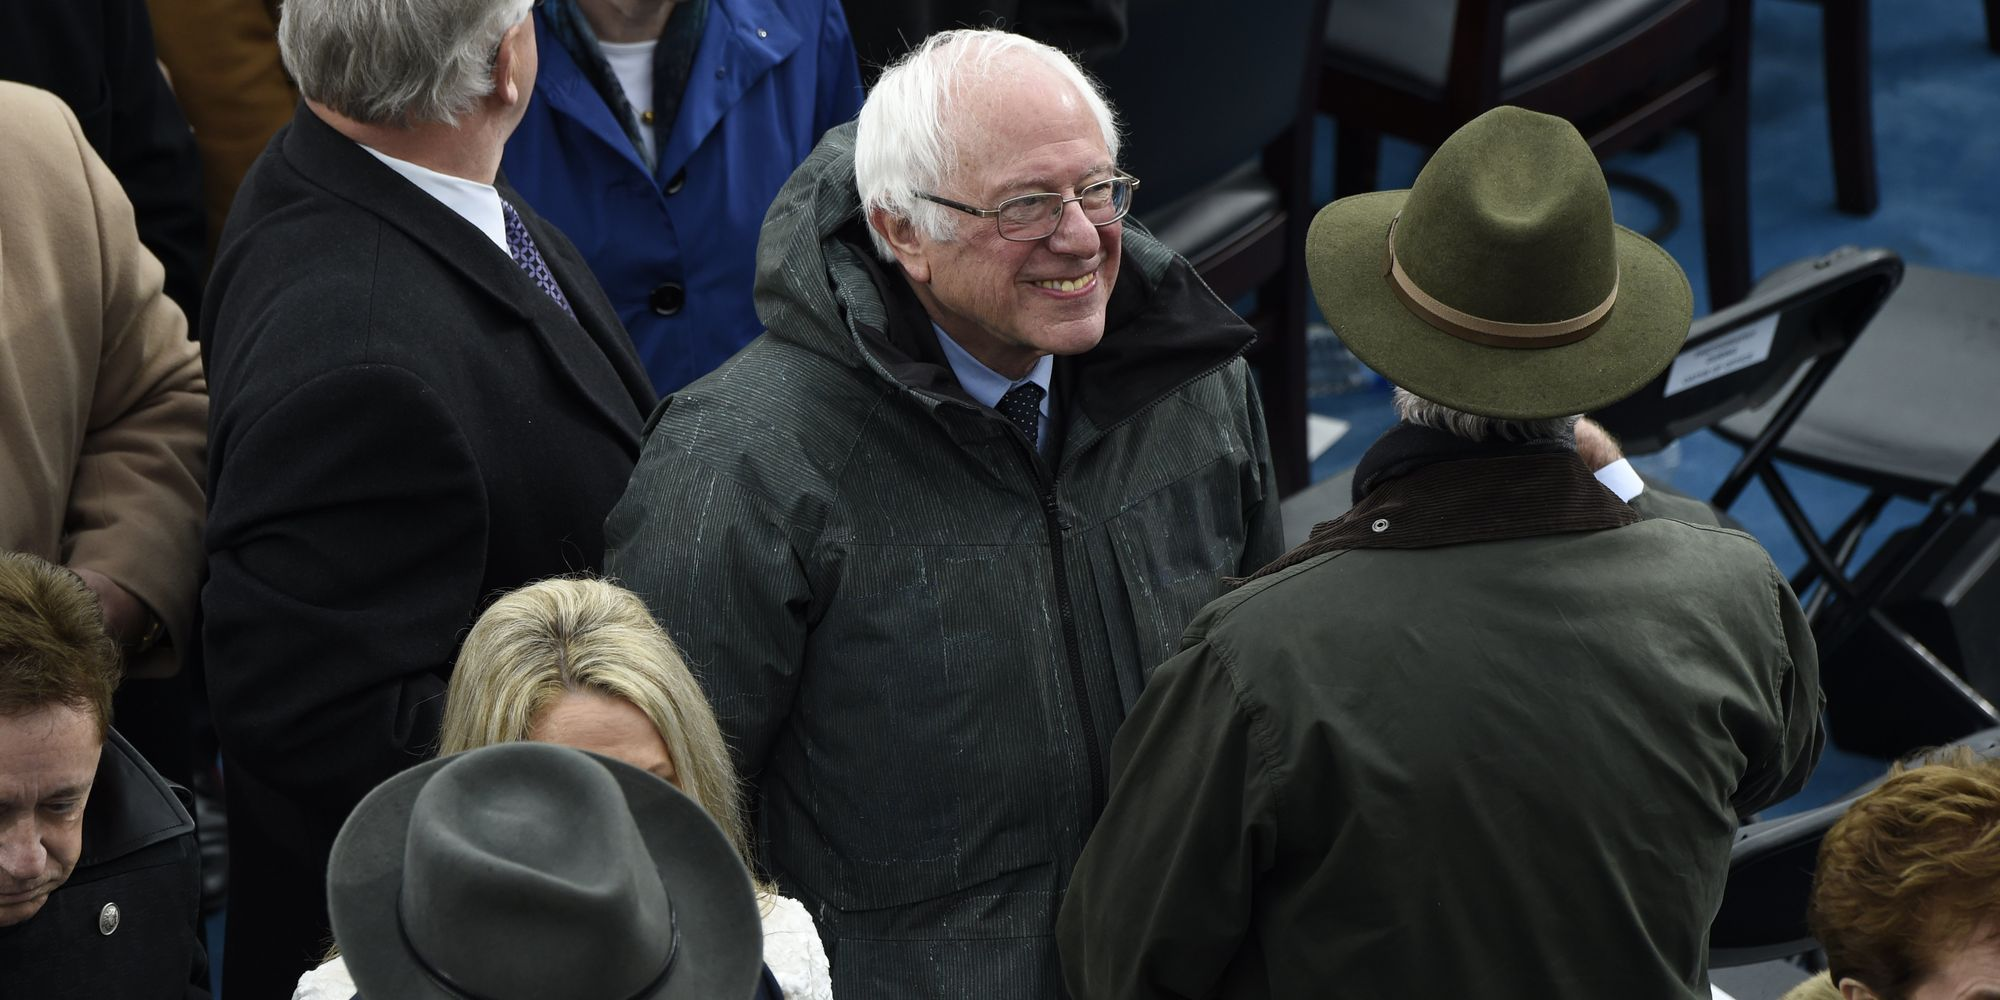 Bernie Sanders Calls Out Trump Inauguration For 'Billionaire After Billionaire' In VIP Section